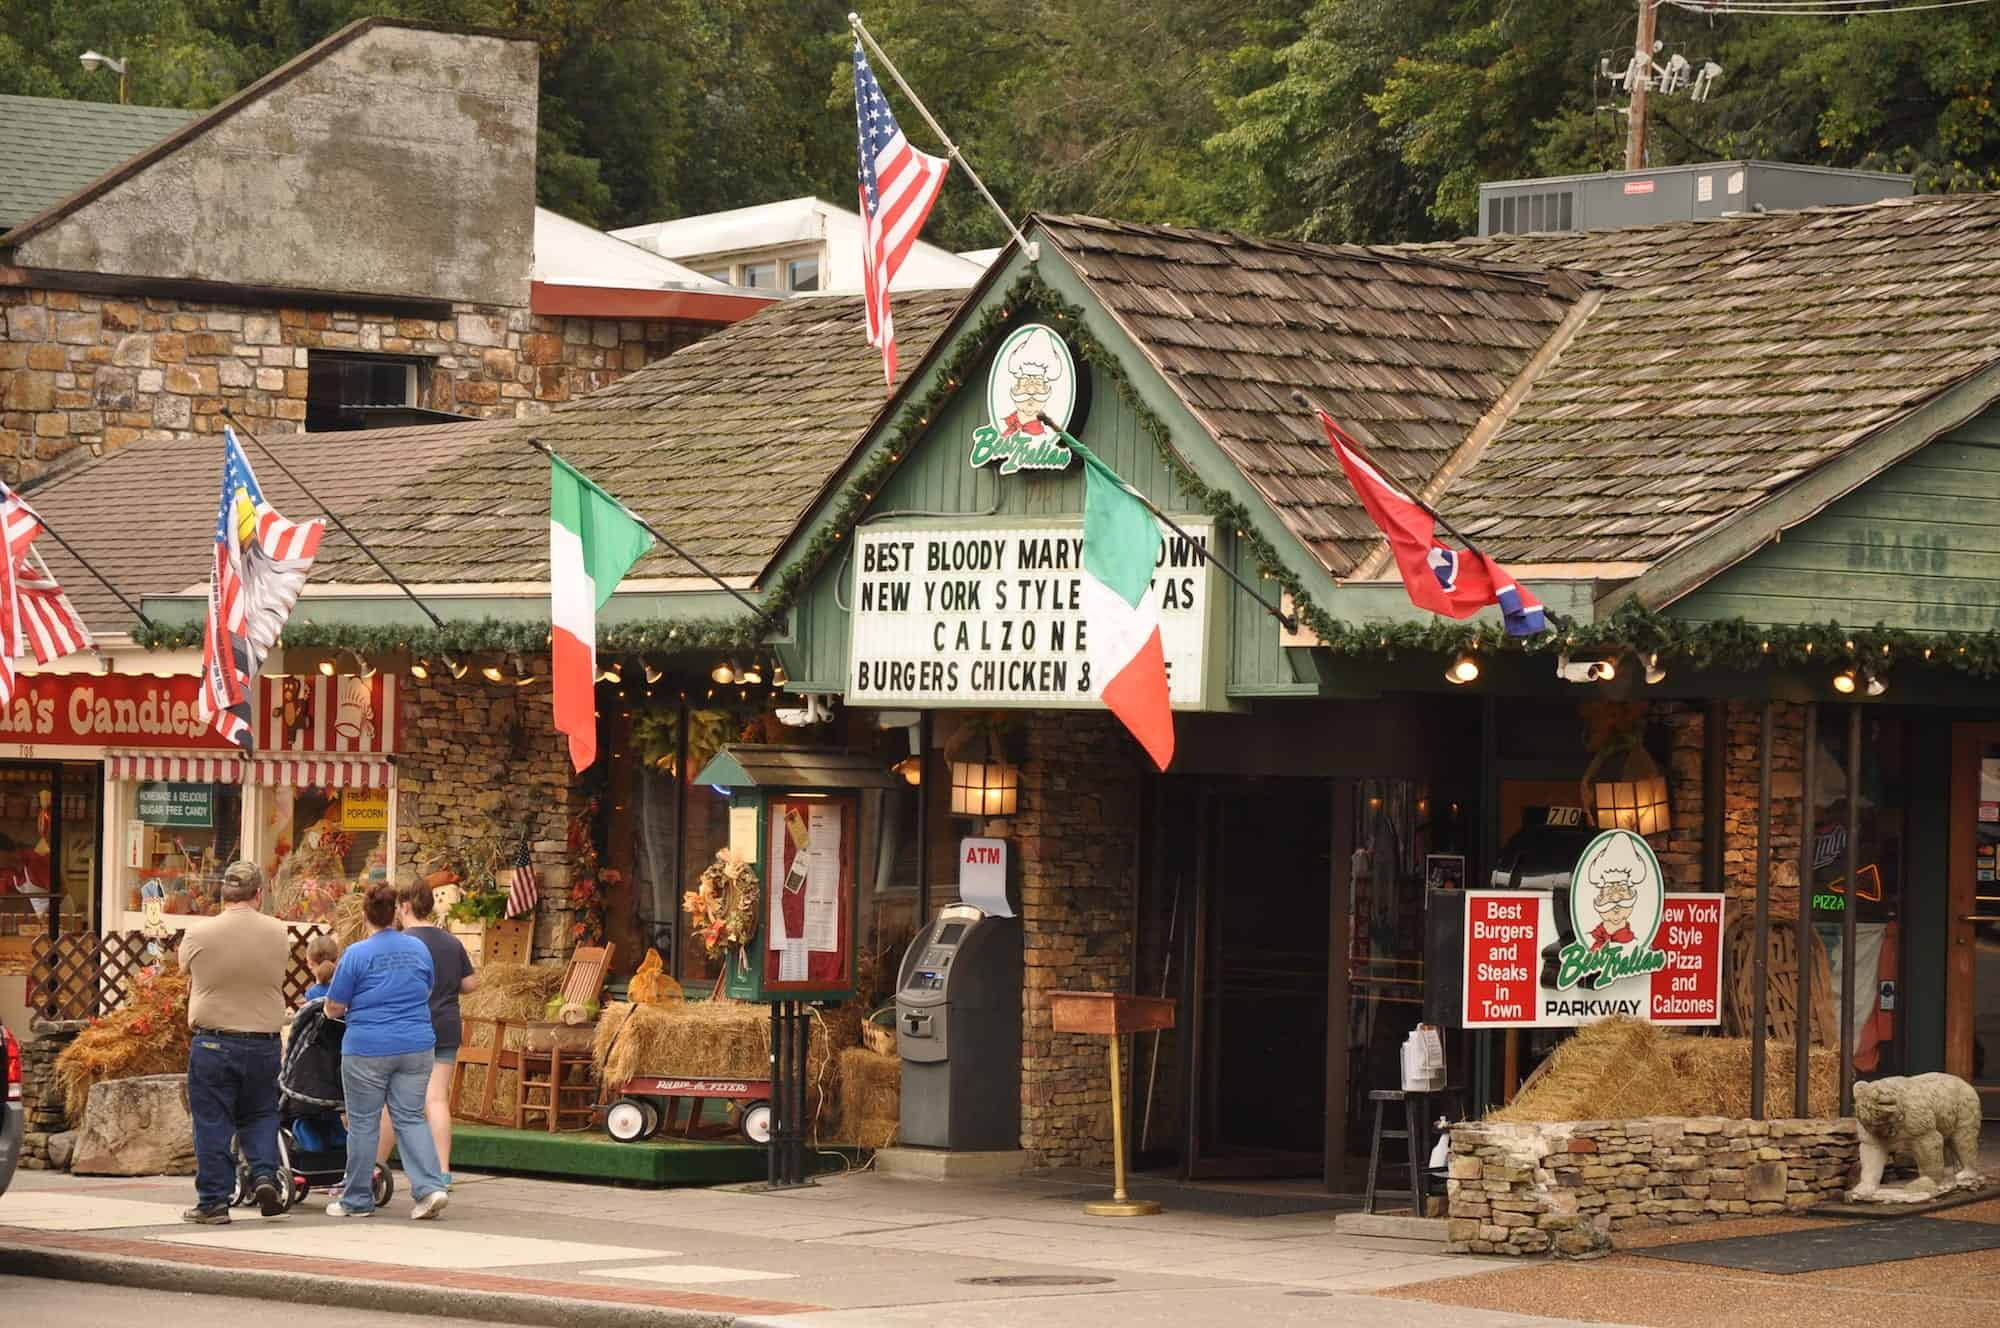 Best Italian Gatlinburg restaurant